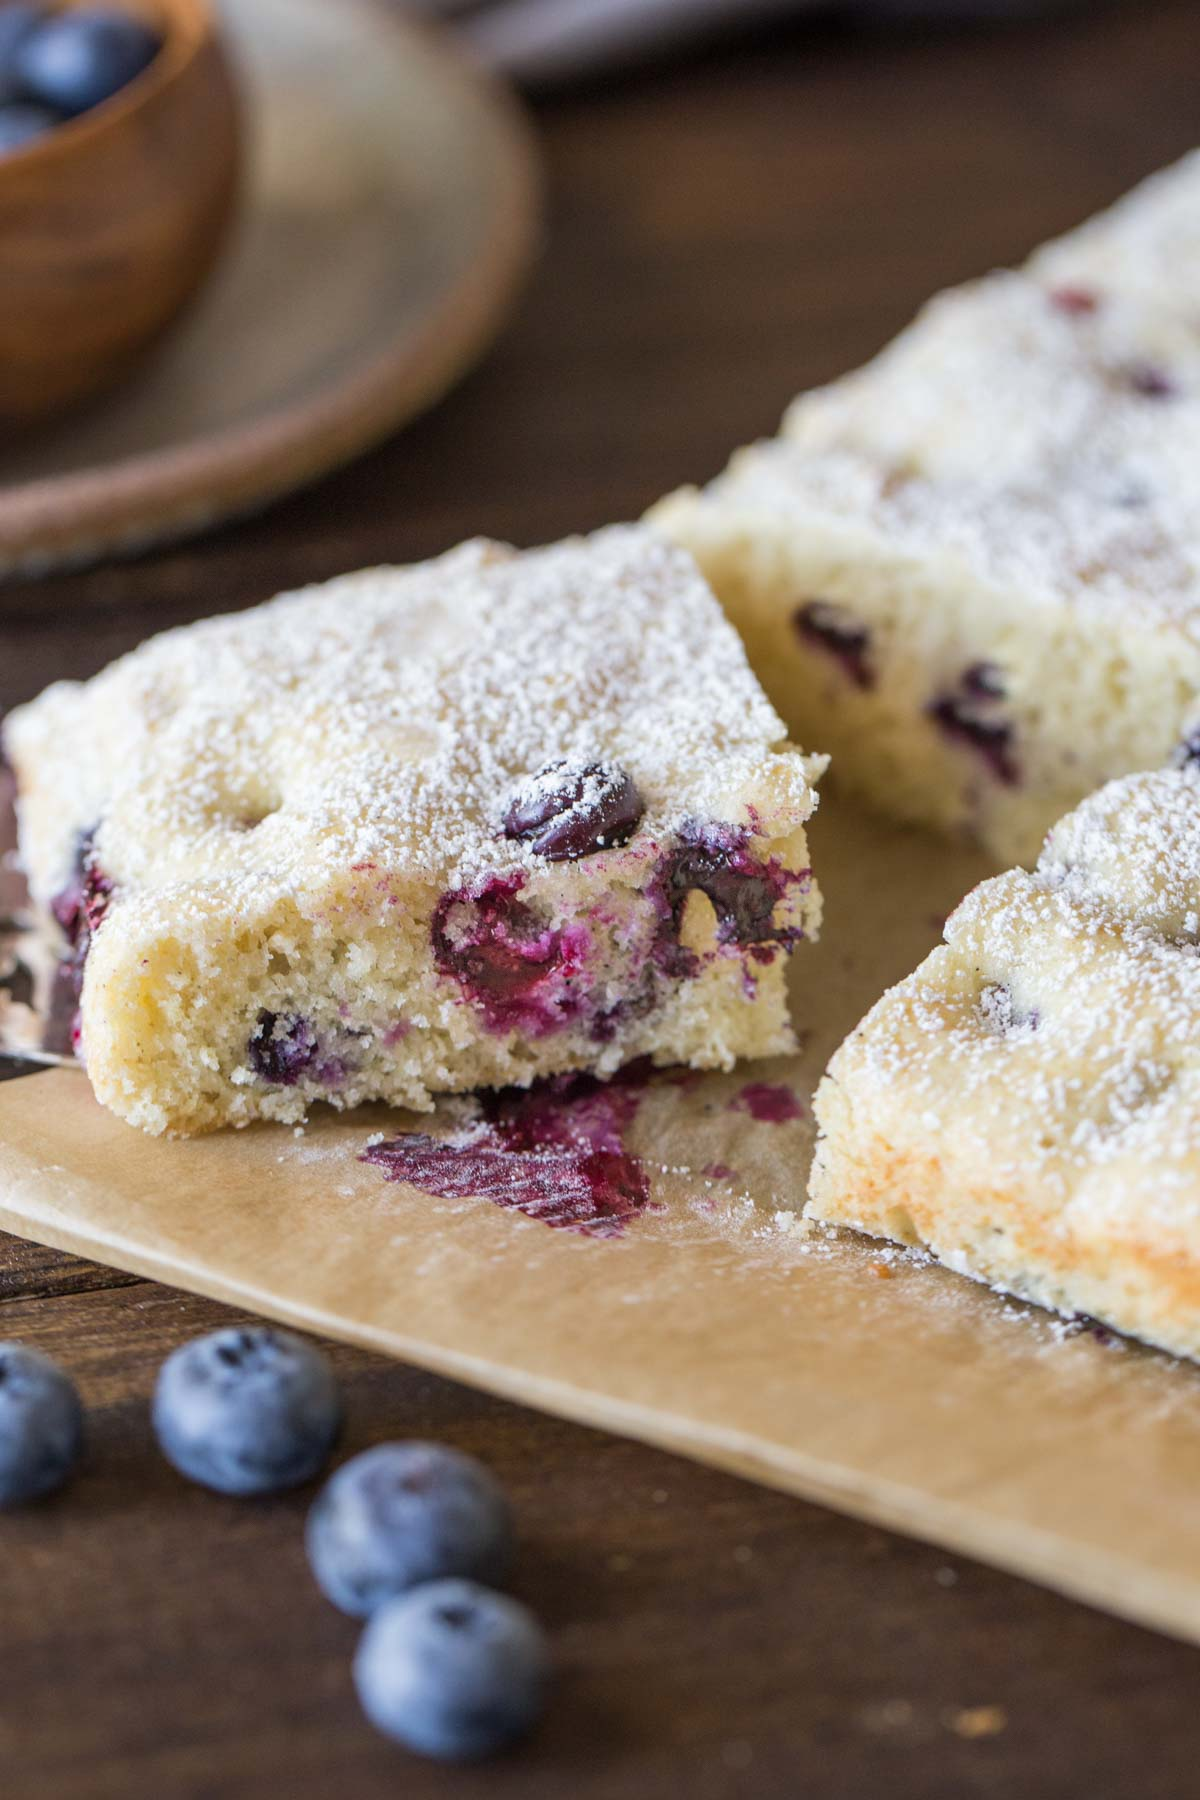 Buttermilk Blueberry Snack Cake sliced on a piece of parchment paper.